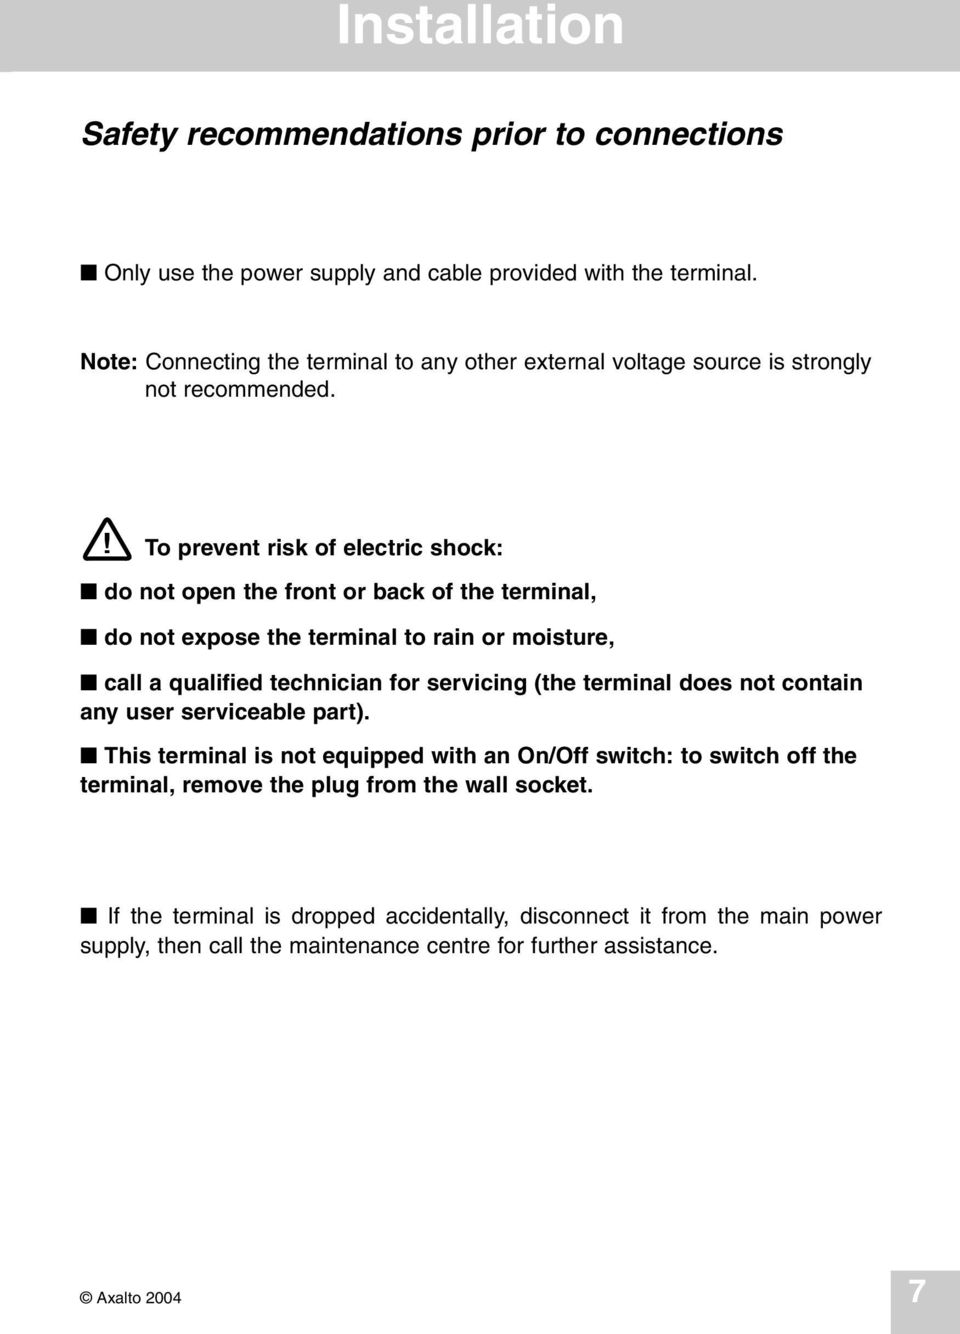 ! To prevent risk of electric shock: do not open the front or back of the terminal, do not expose the terminal to rain or moisture, call a qualified technician for servicing (the